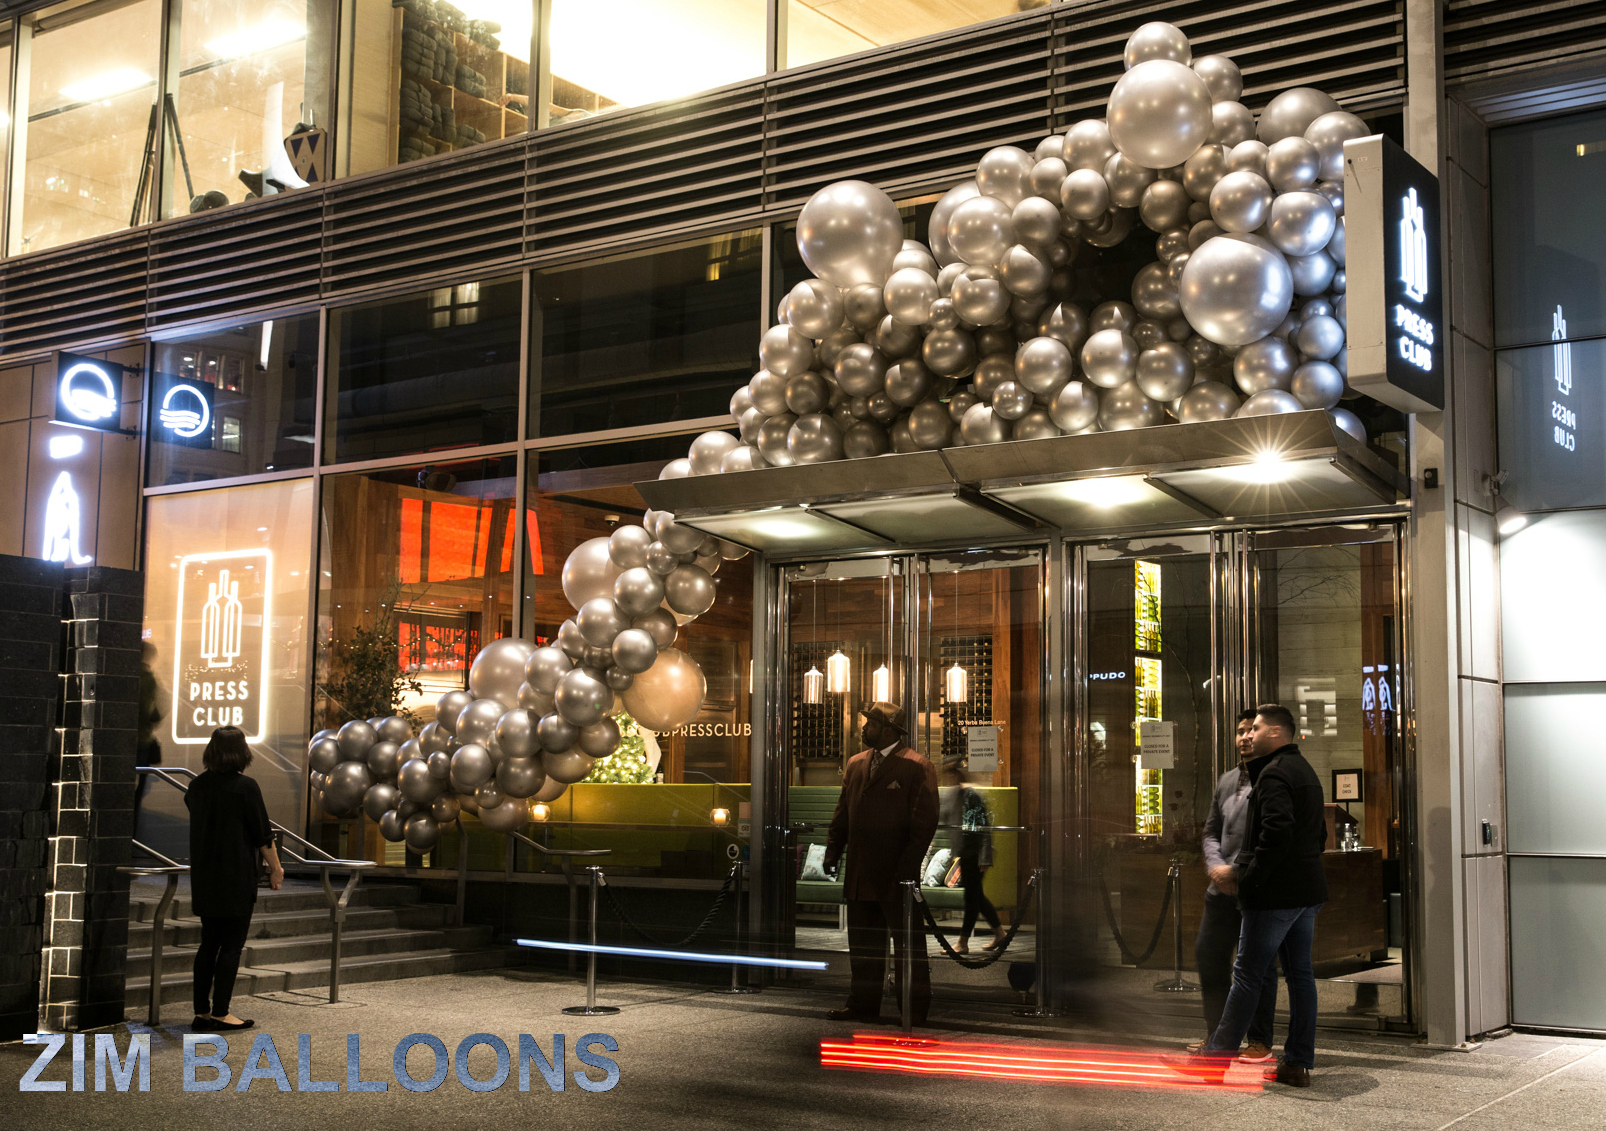 Organic Balloon Installation SF Balloon Art - Zim Balloons.jpg